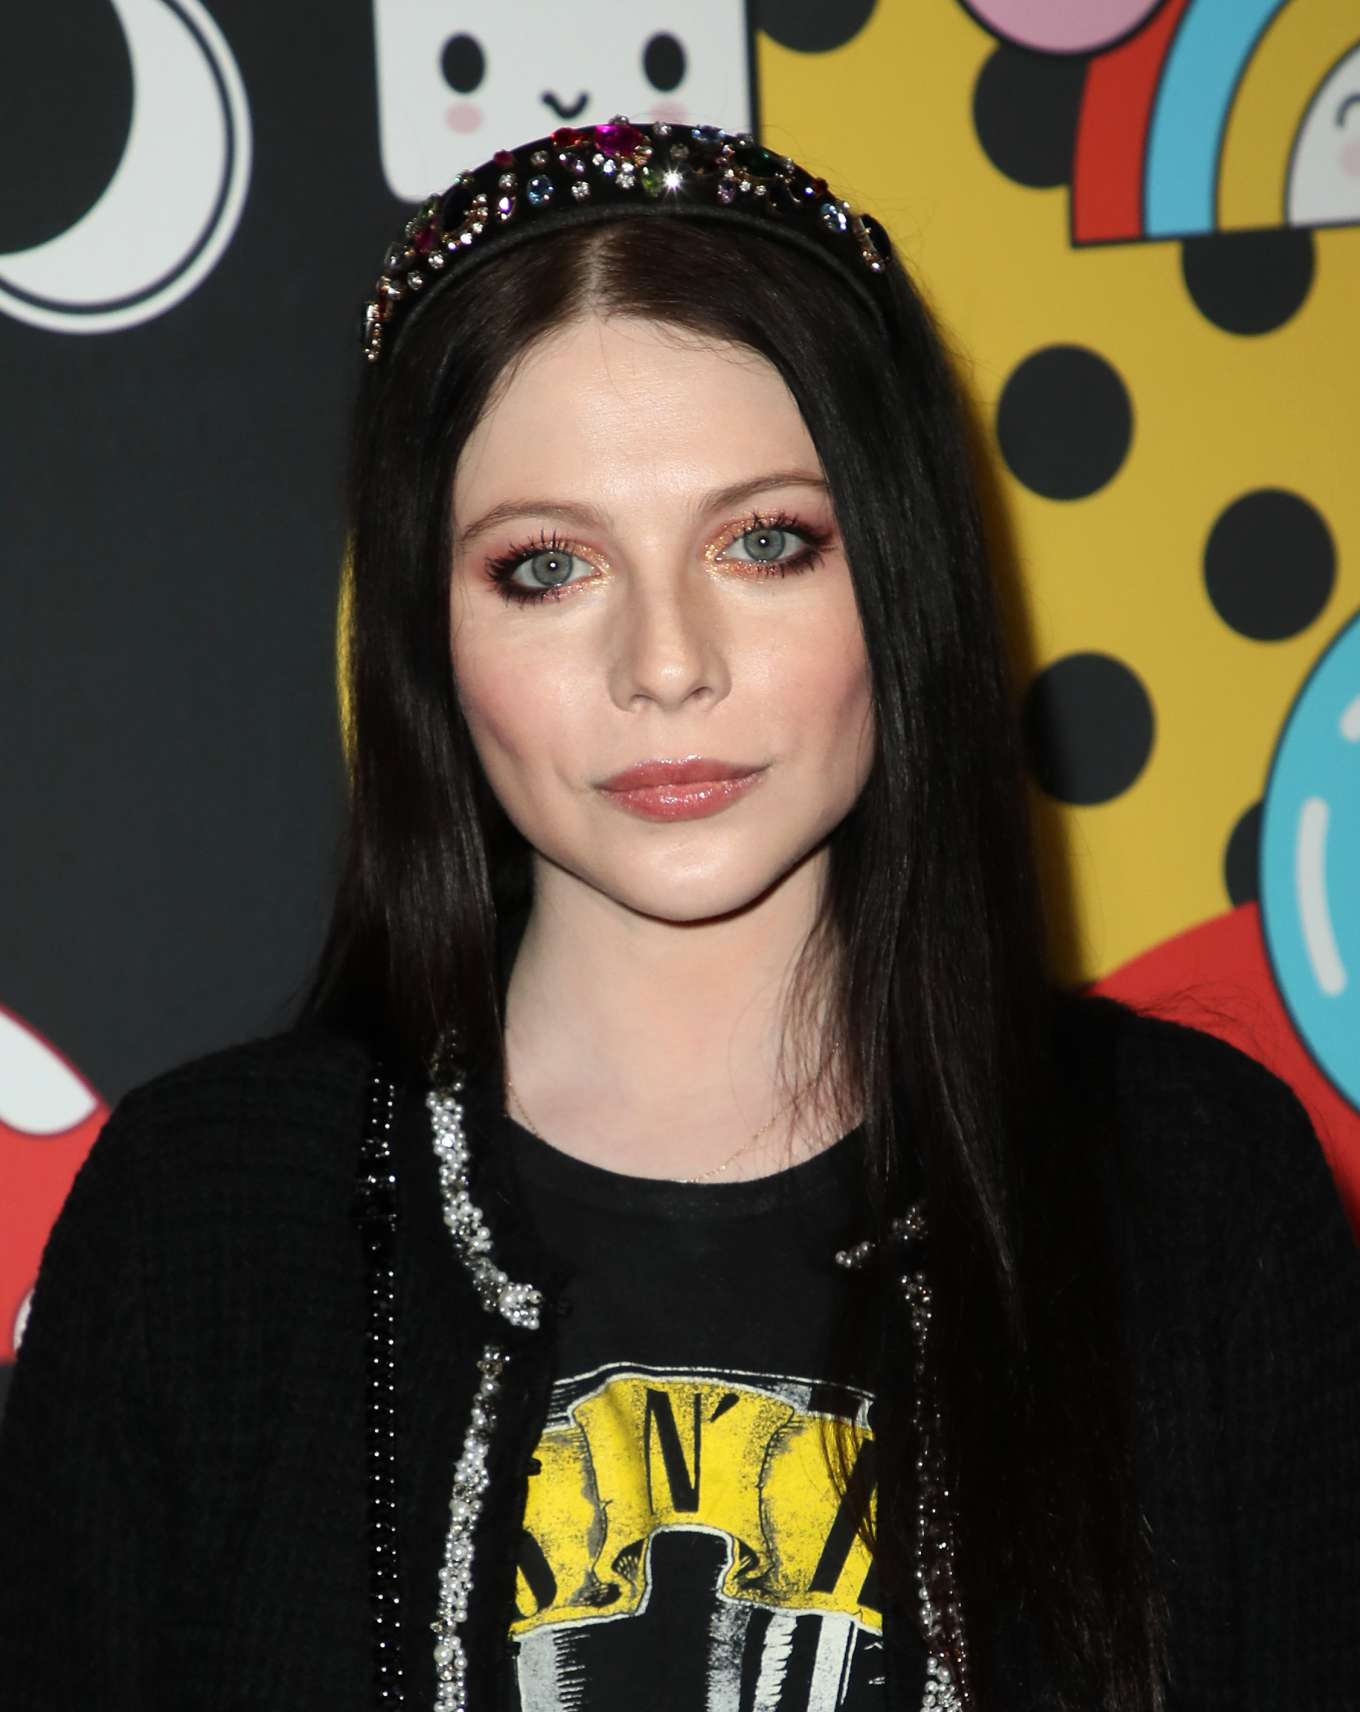 Michelle Trachtenberg 2019 : Michelle Trachtenberg – alice + olivia by Stacey Bendet x FriendsWithYou Collection-01